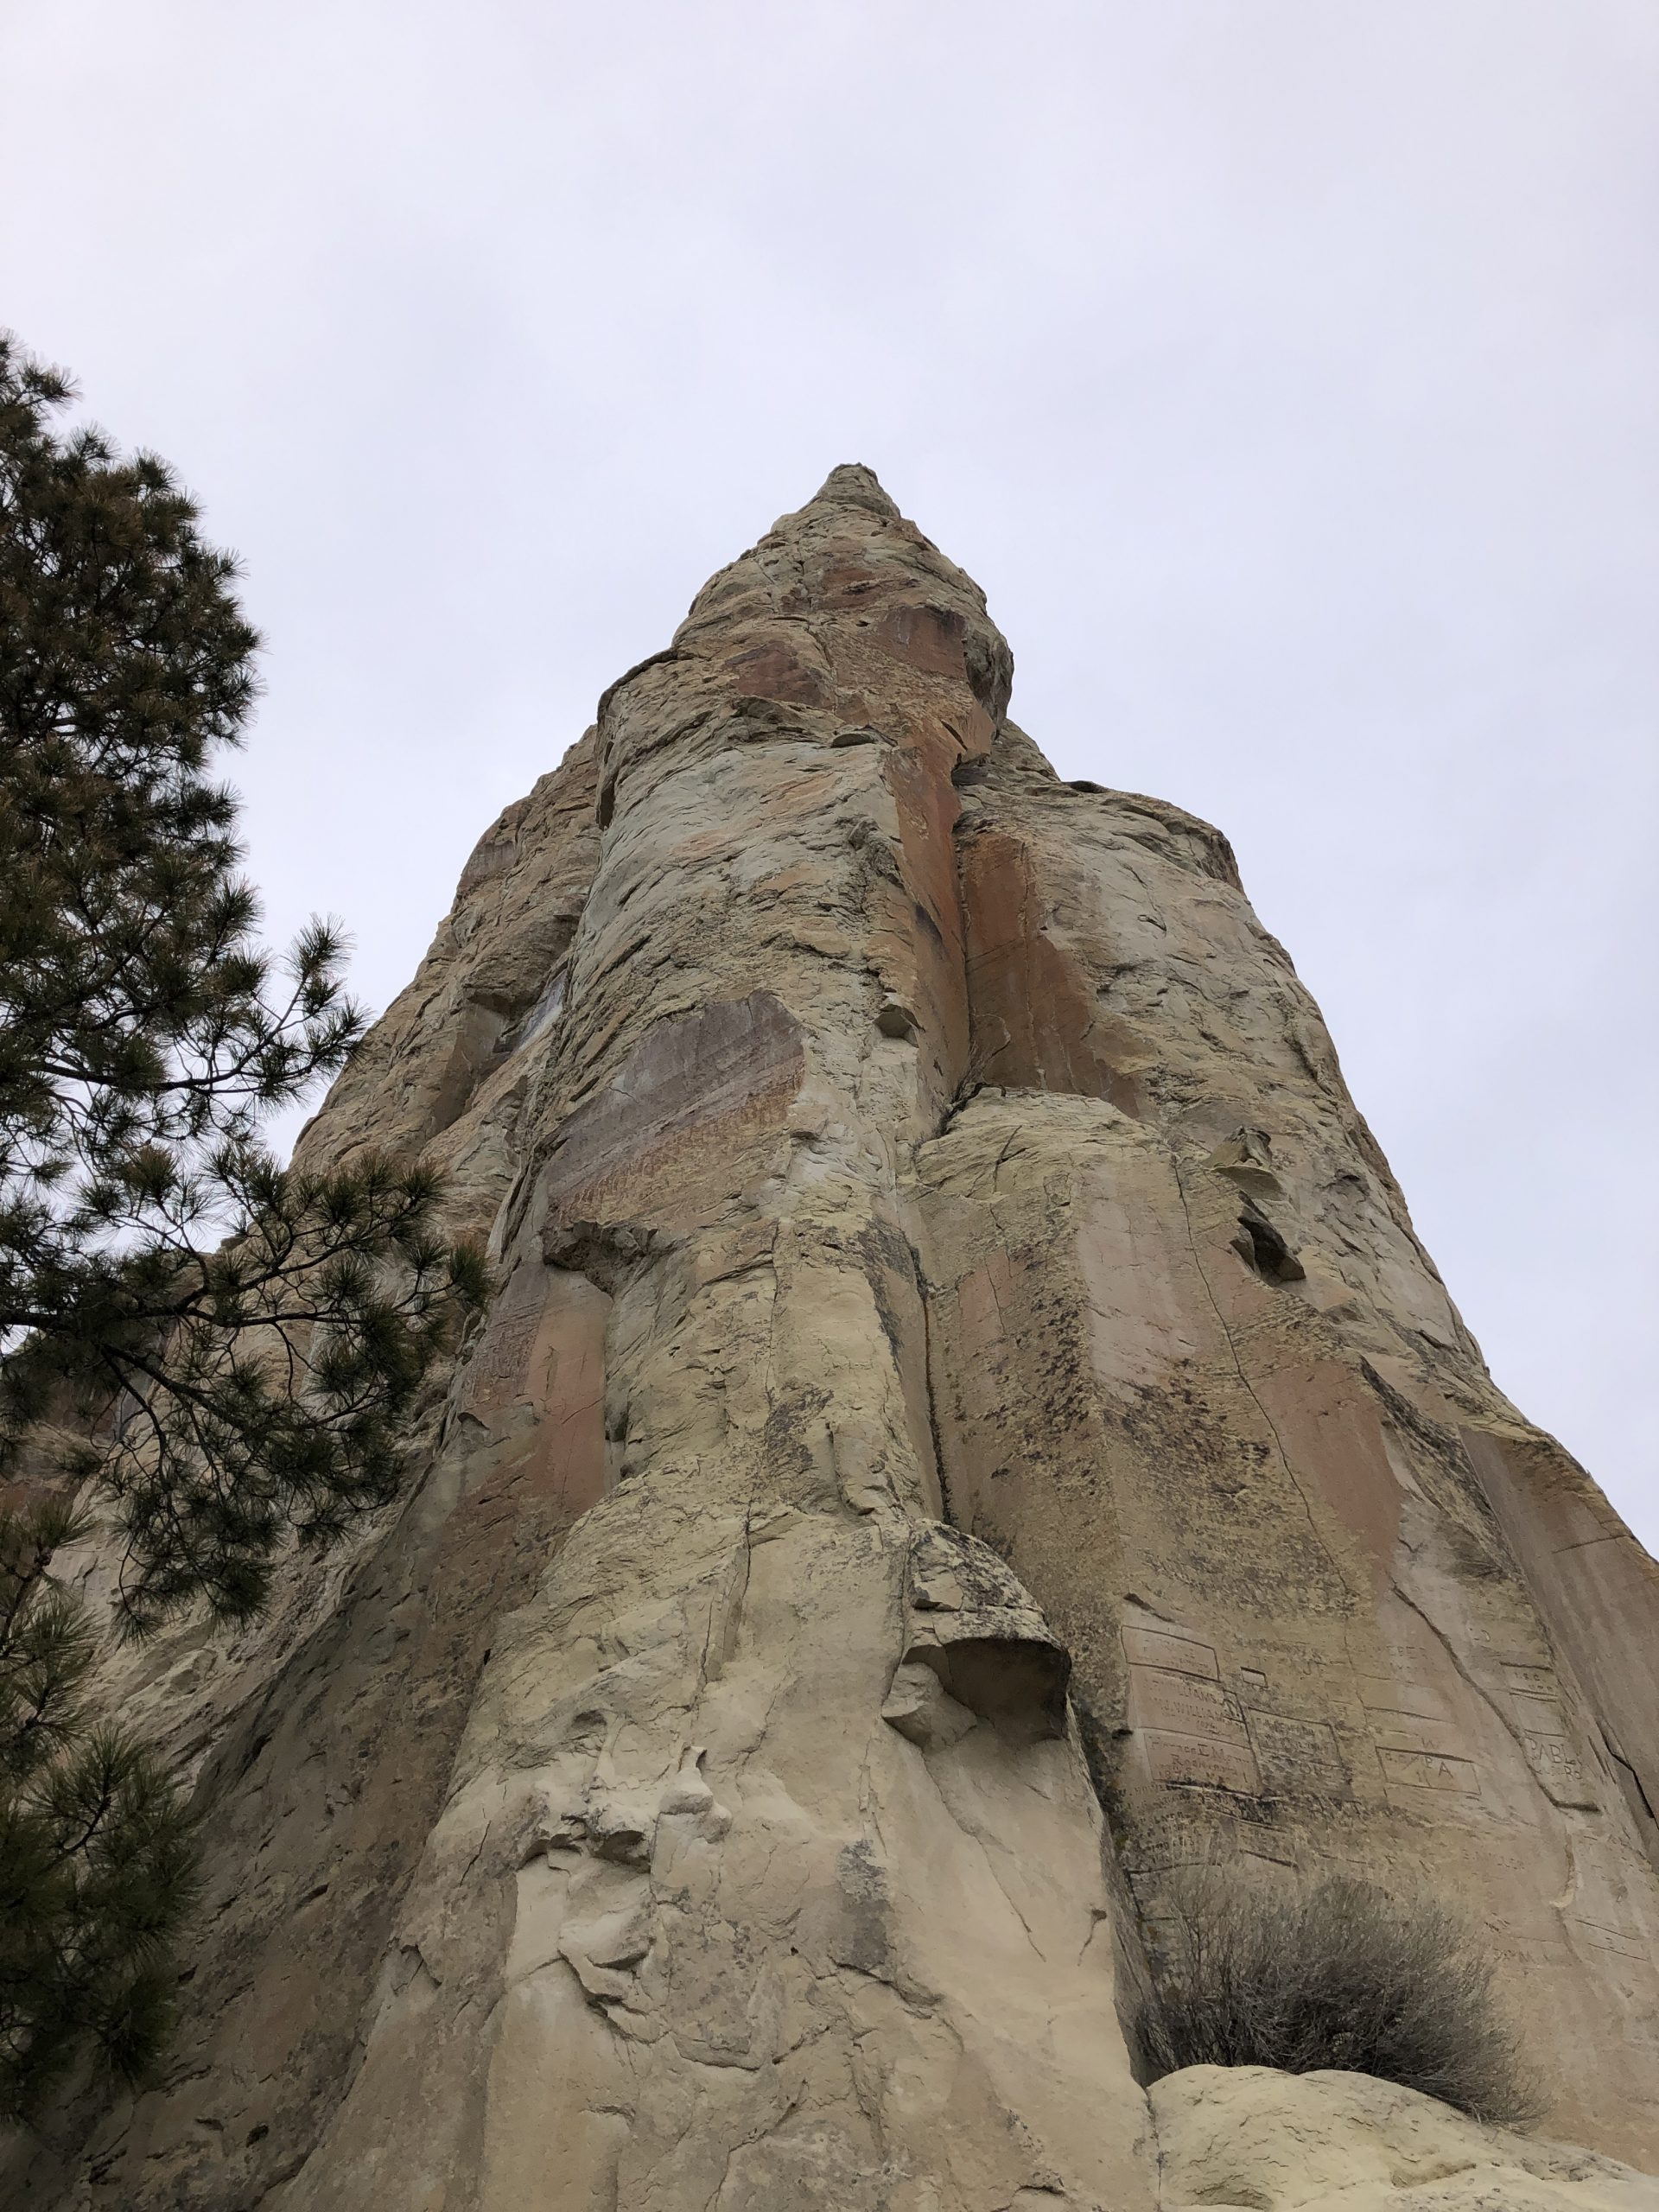 El Morro National Monument, March 2020